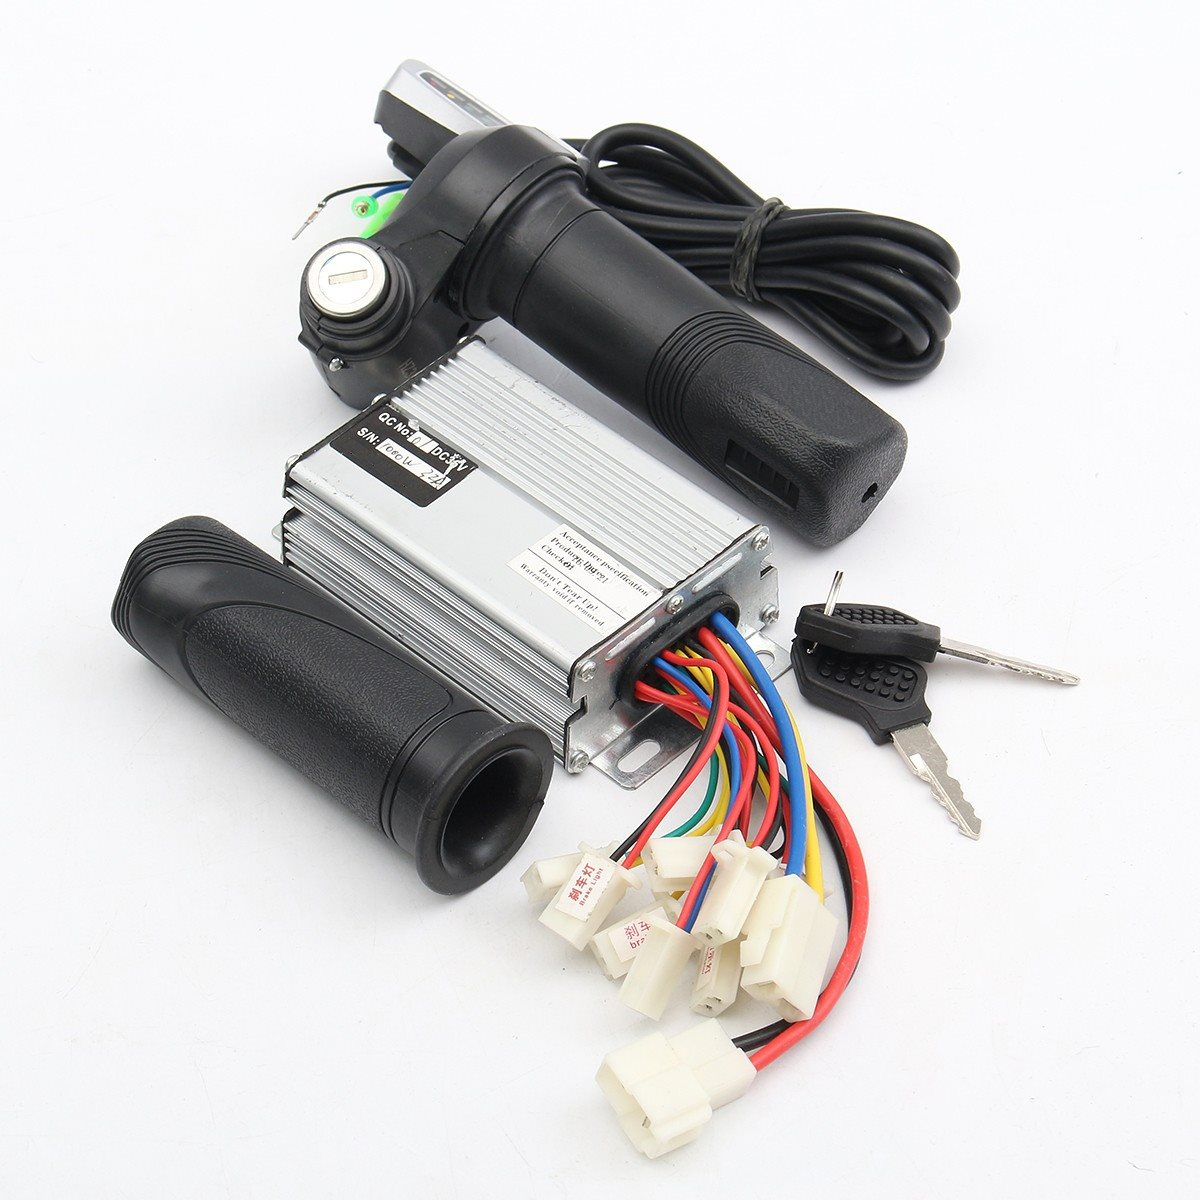 1Set 1000W 36V Motor Brushed Controller Throttle Twist Grips For Electric Bike Scooter throttle hand grips brake levers throttle housing set for goped gas scooter 43cc 47cc 49cc minimoto bicycle parts